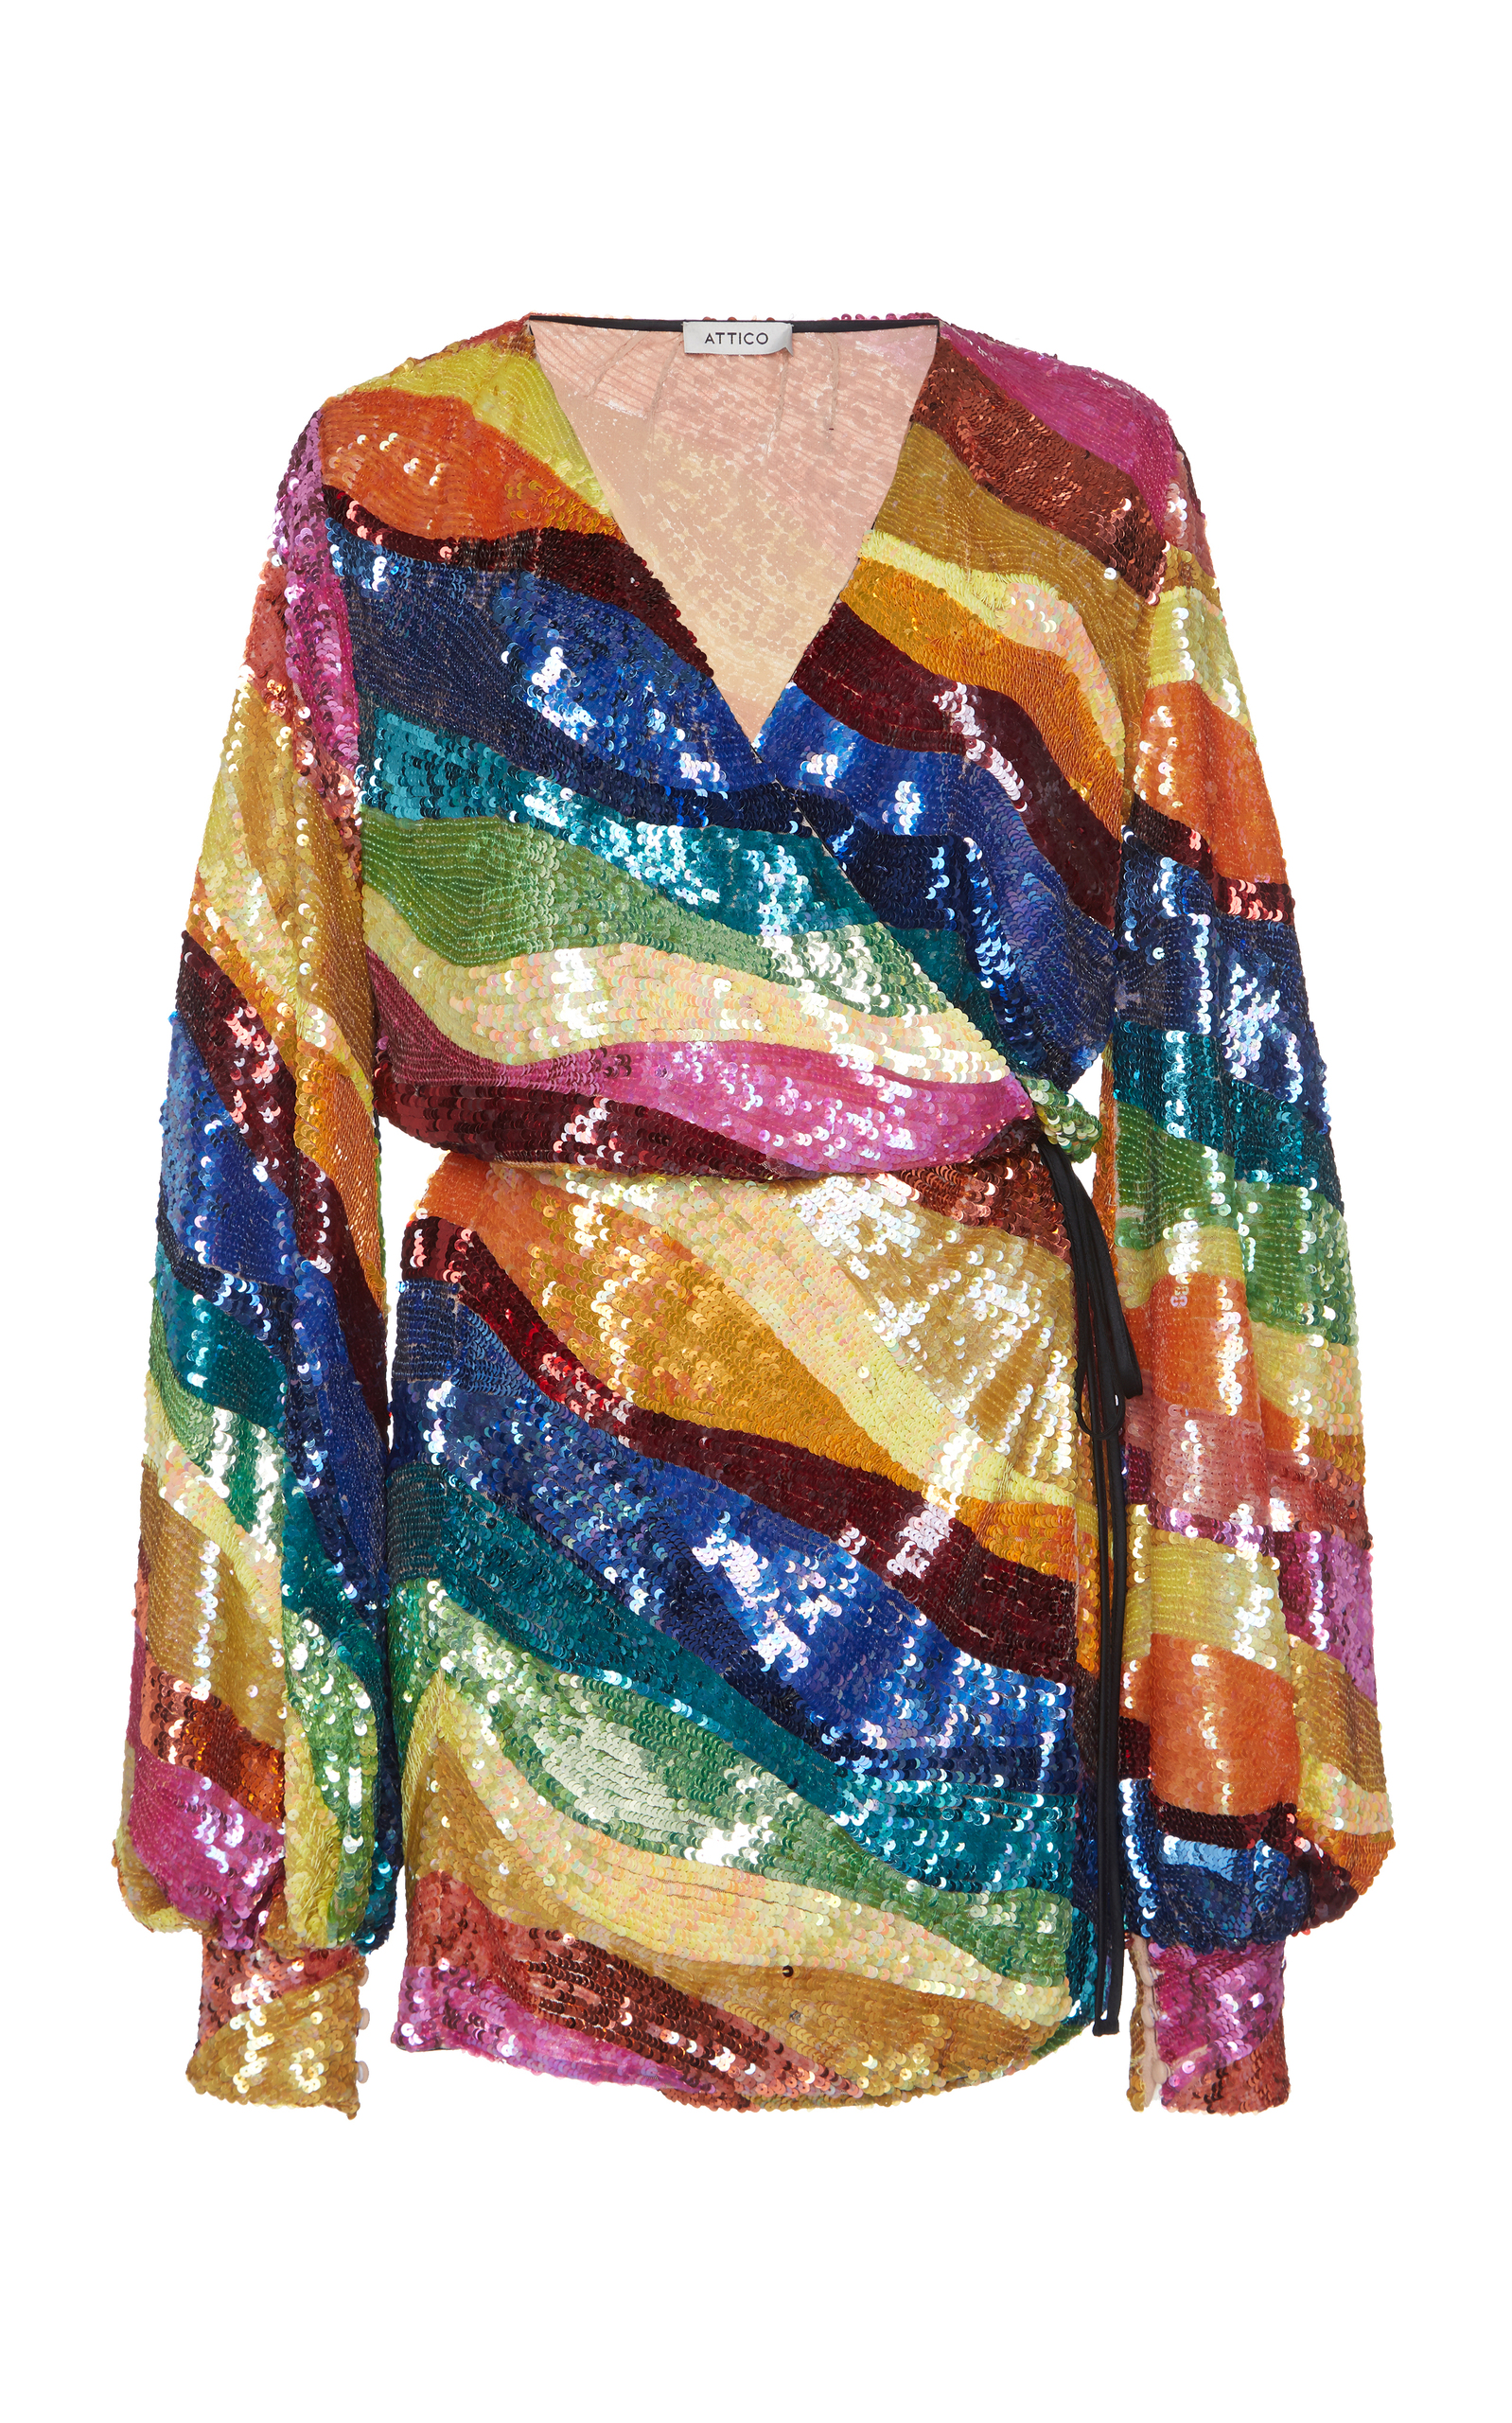 The Attico Rainbow Sequin Dress Image Balcony And Attic